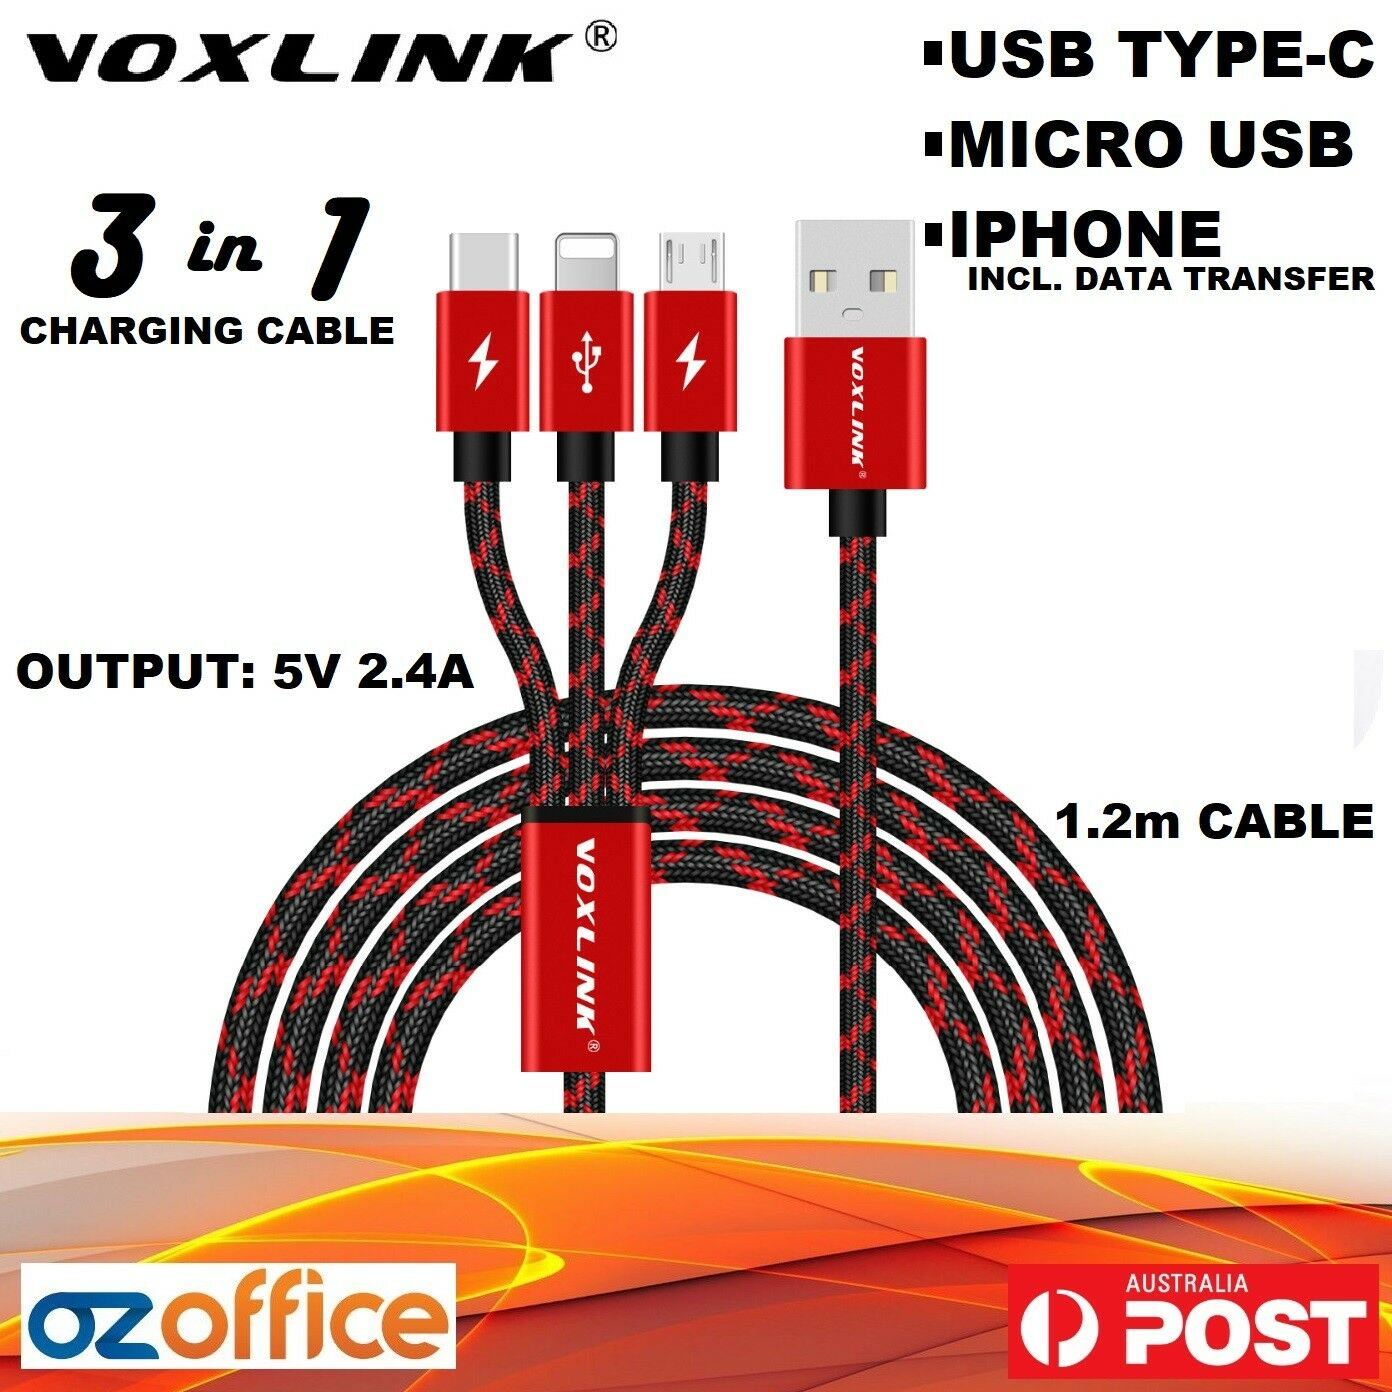 Voxlink 3 In 1 Multi Usb Charging Cable Iphone Data Sync Micro Type C Wiring A Durable Nylon Braided With Connections Which Covers Almost Every Phone On The Market